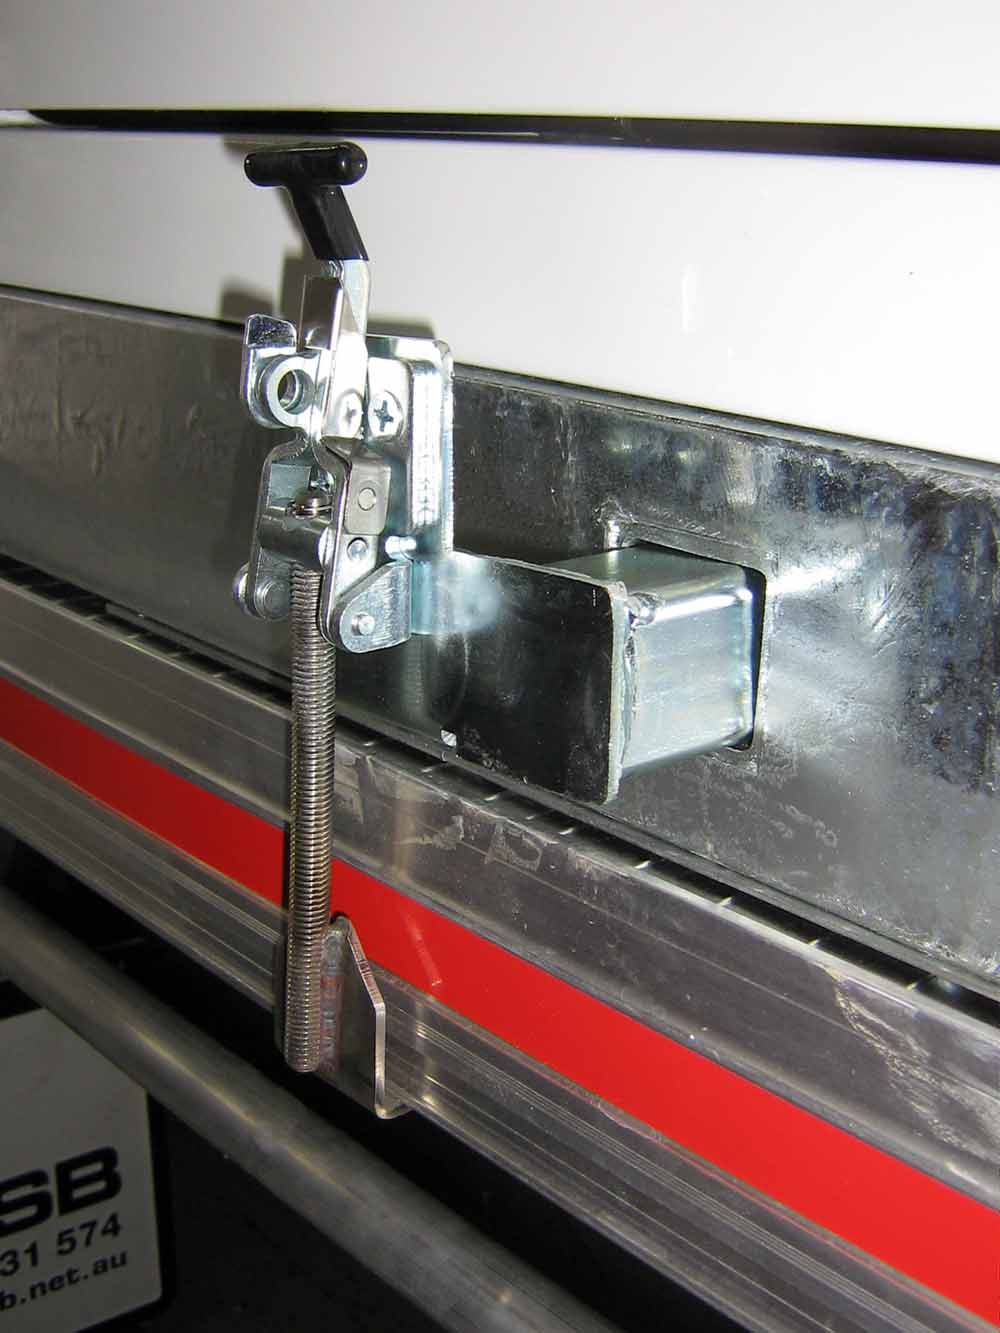 lift-off clamp